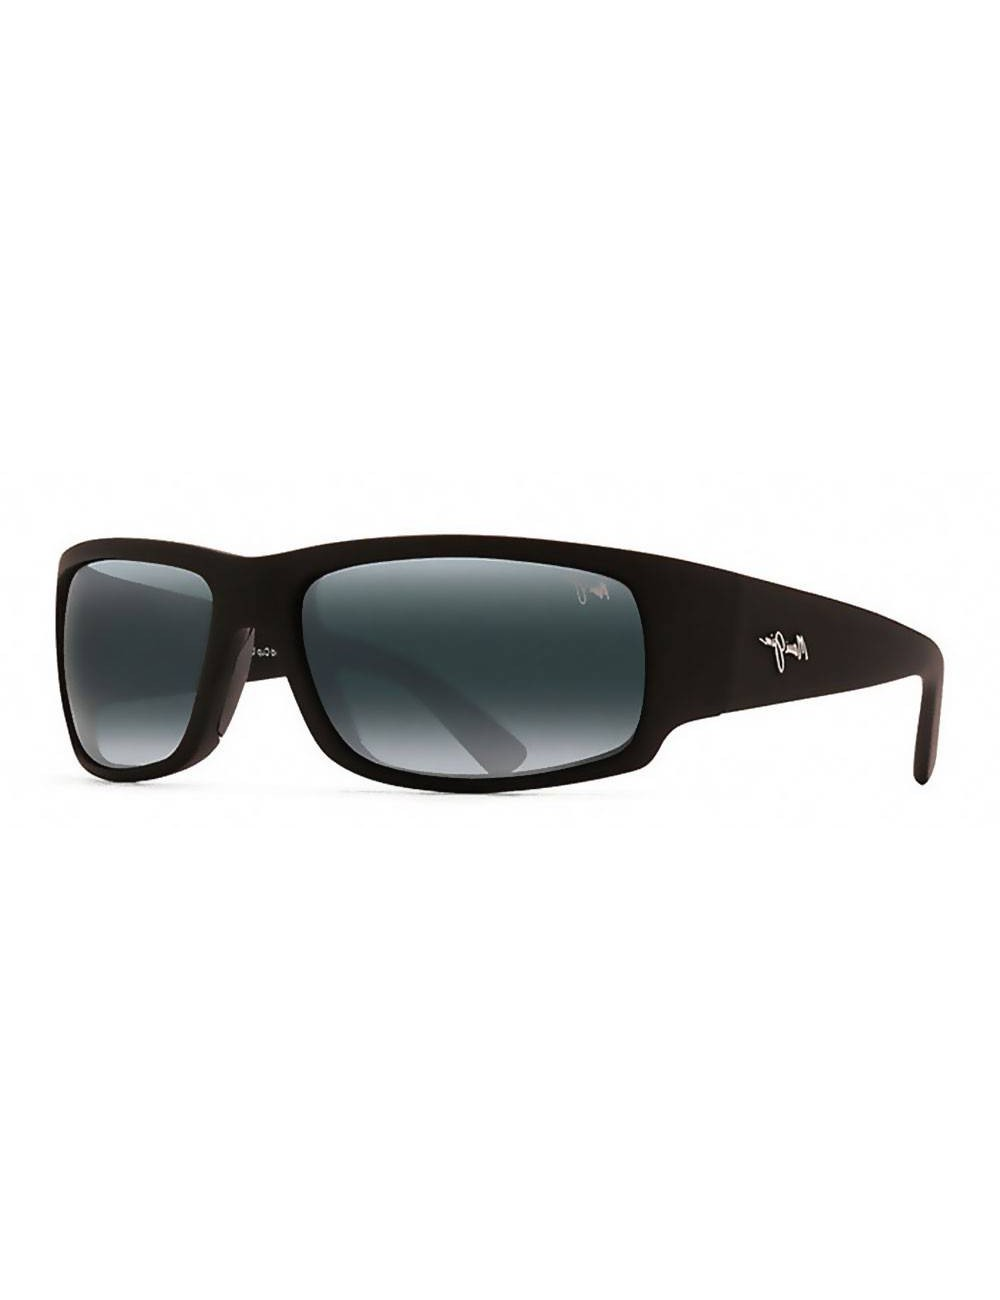 Lunettes de soleil Maui Jim World Cup 266-02MR | Revendeur Agréé Maui Jim | product_reduce_price